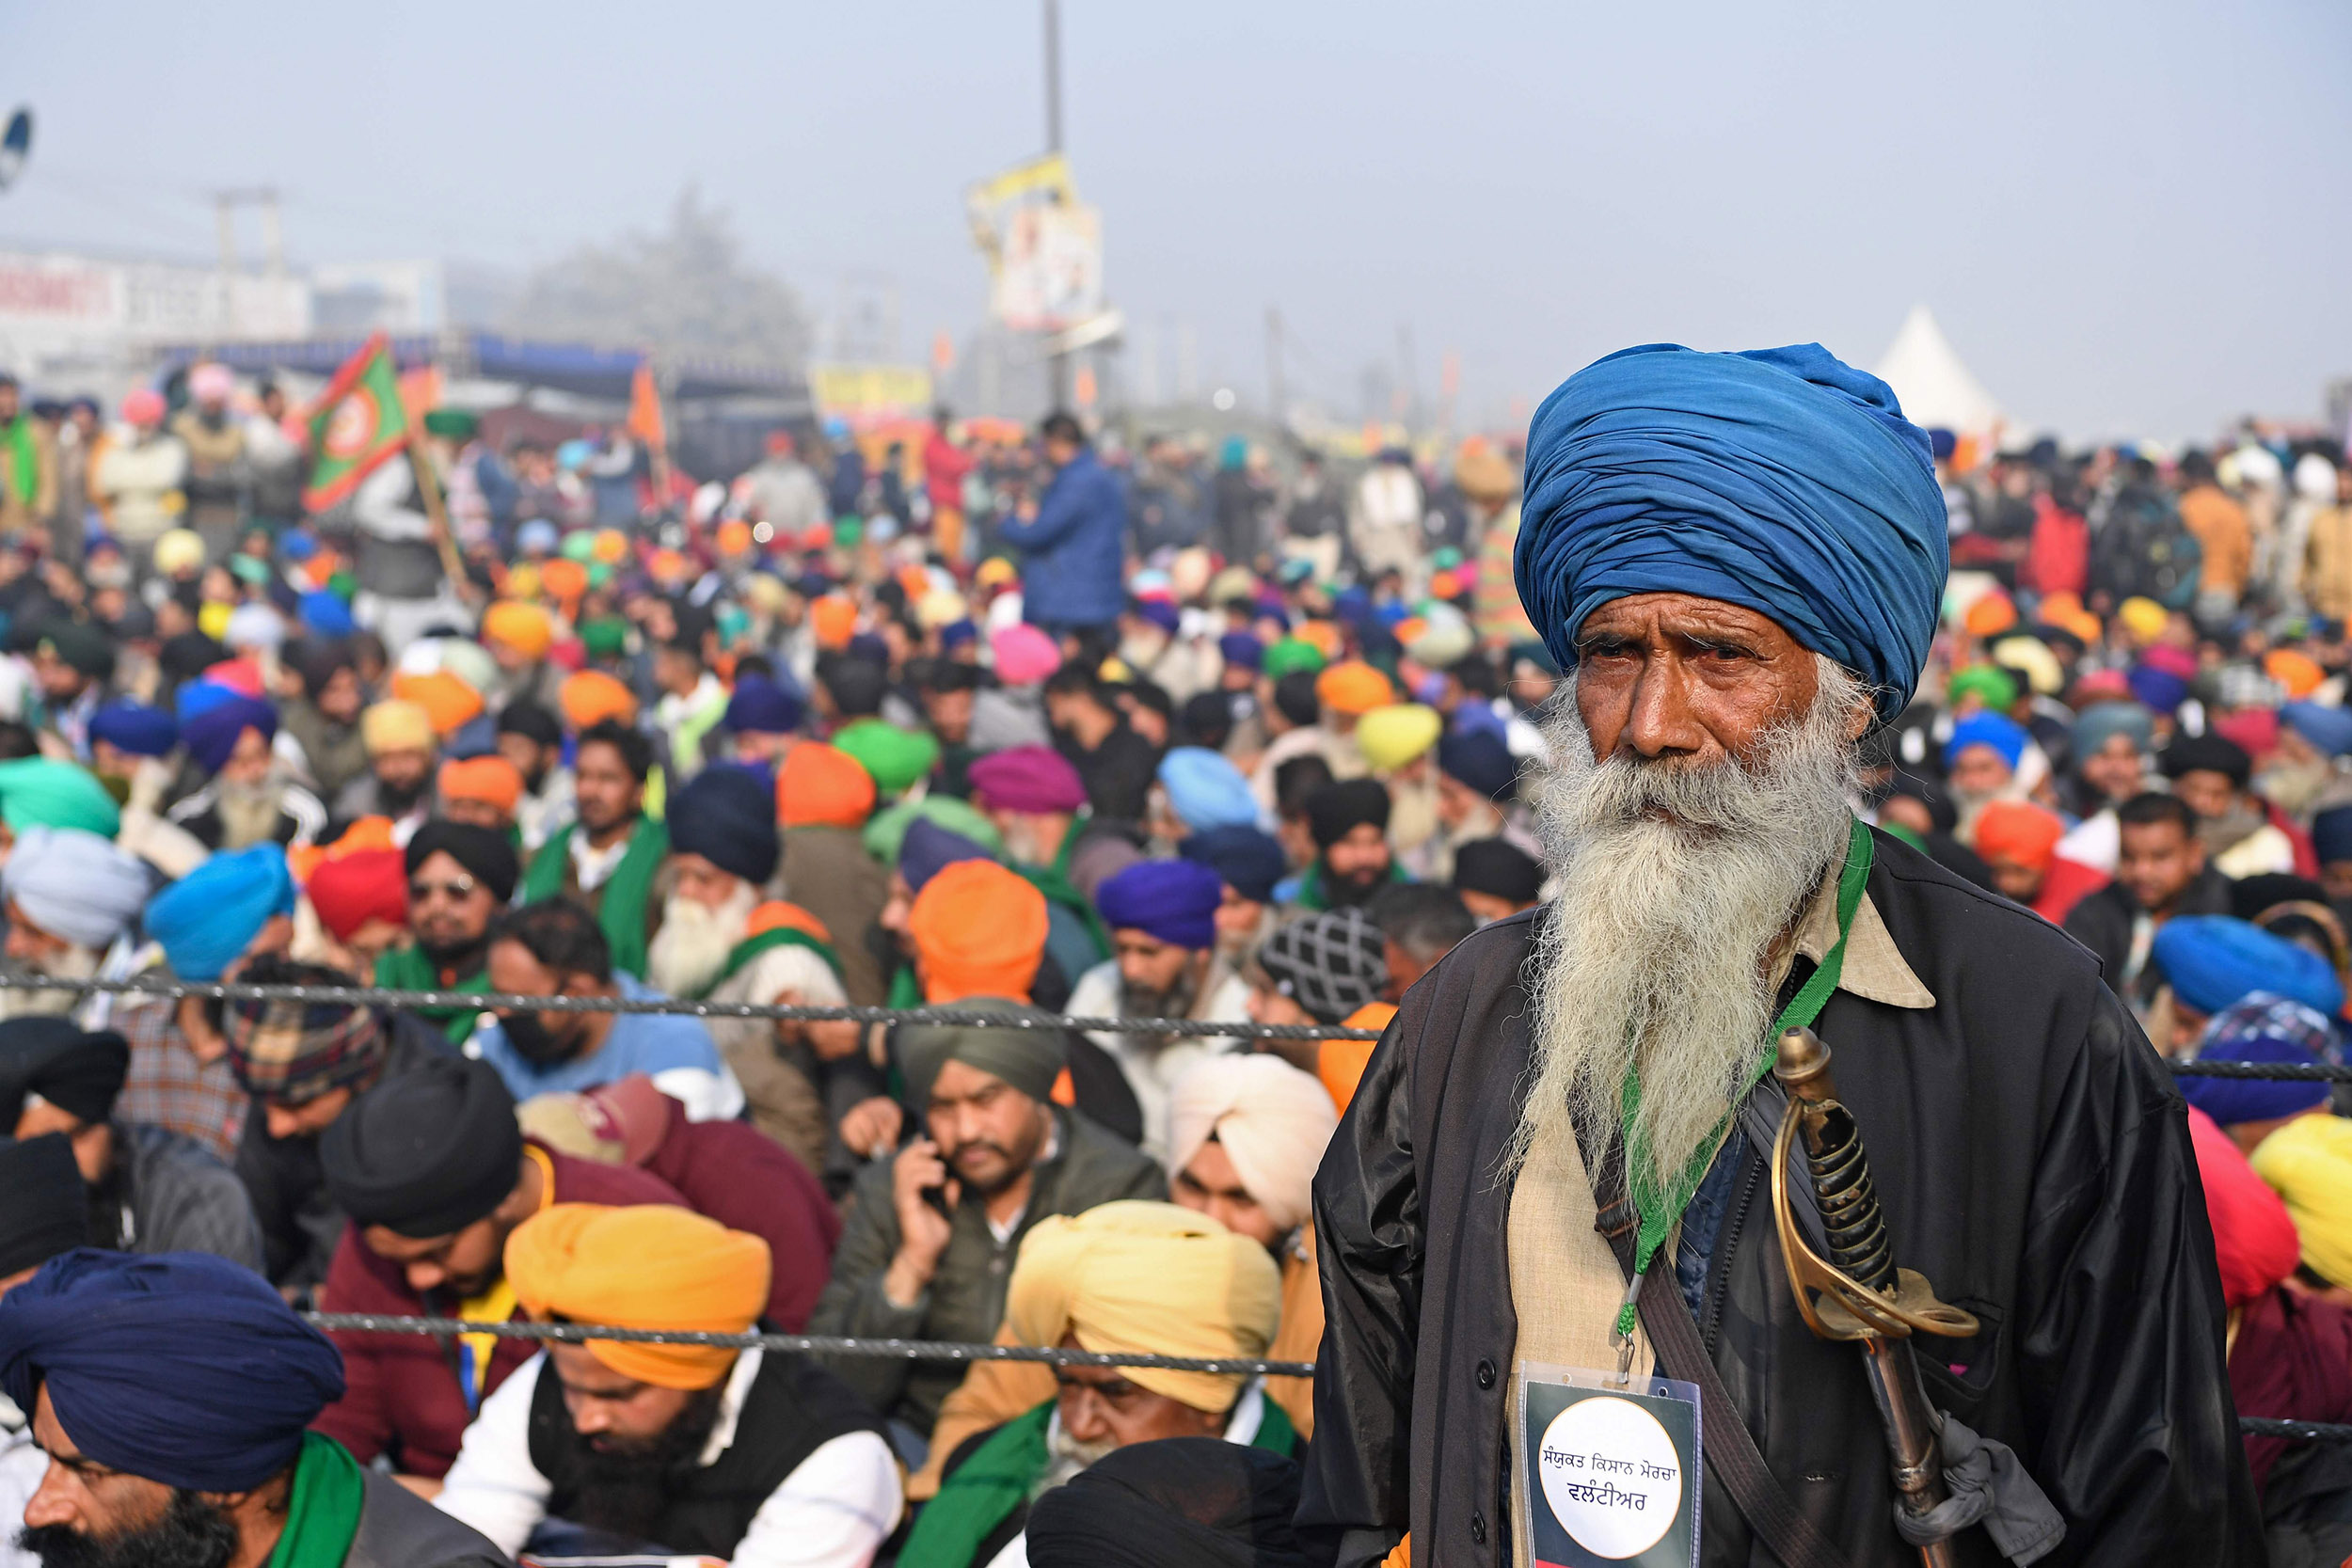 201208-_india_farmer_protests_mc-12453_28c6cc8a18e275f33e3a8d869c972ac8.jpg